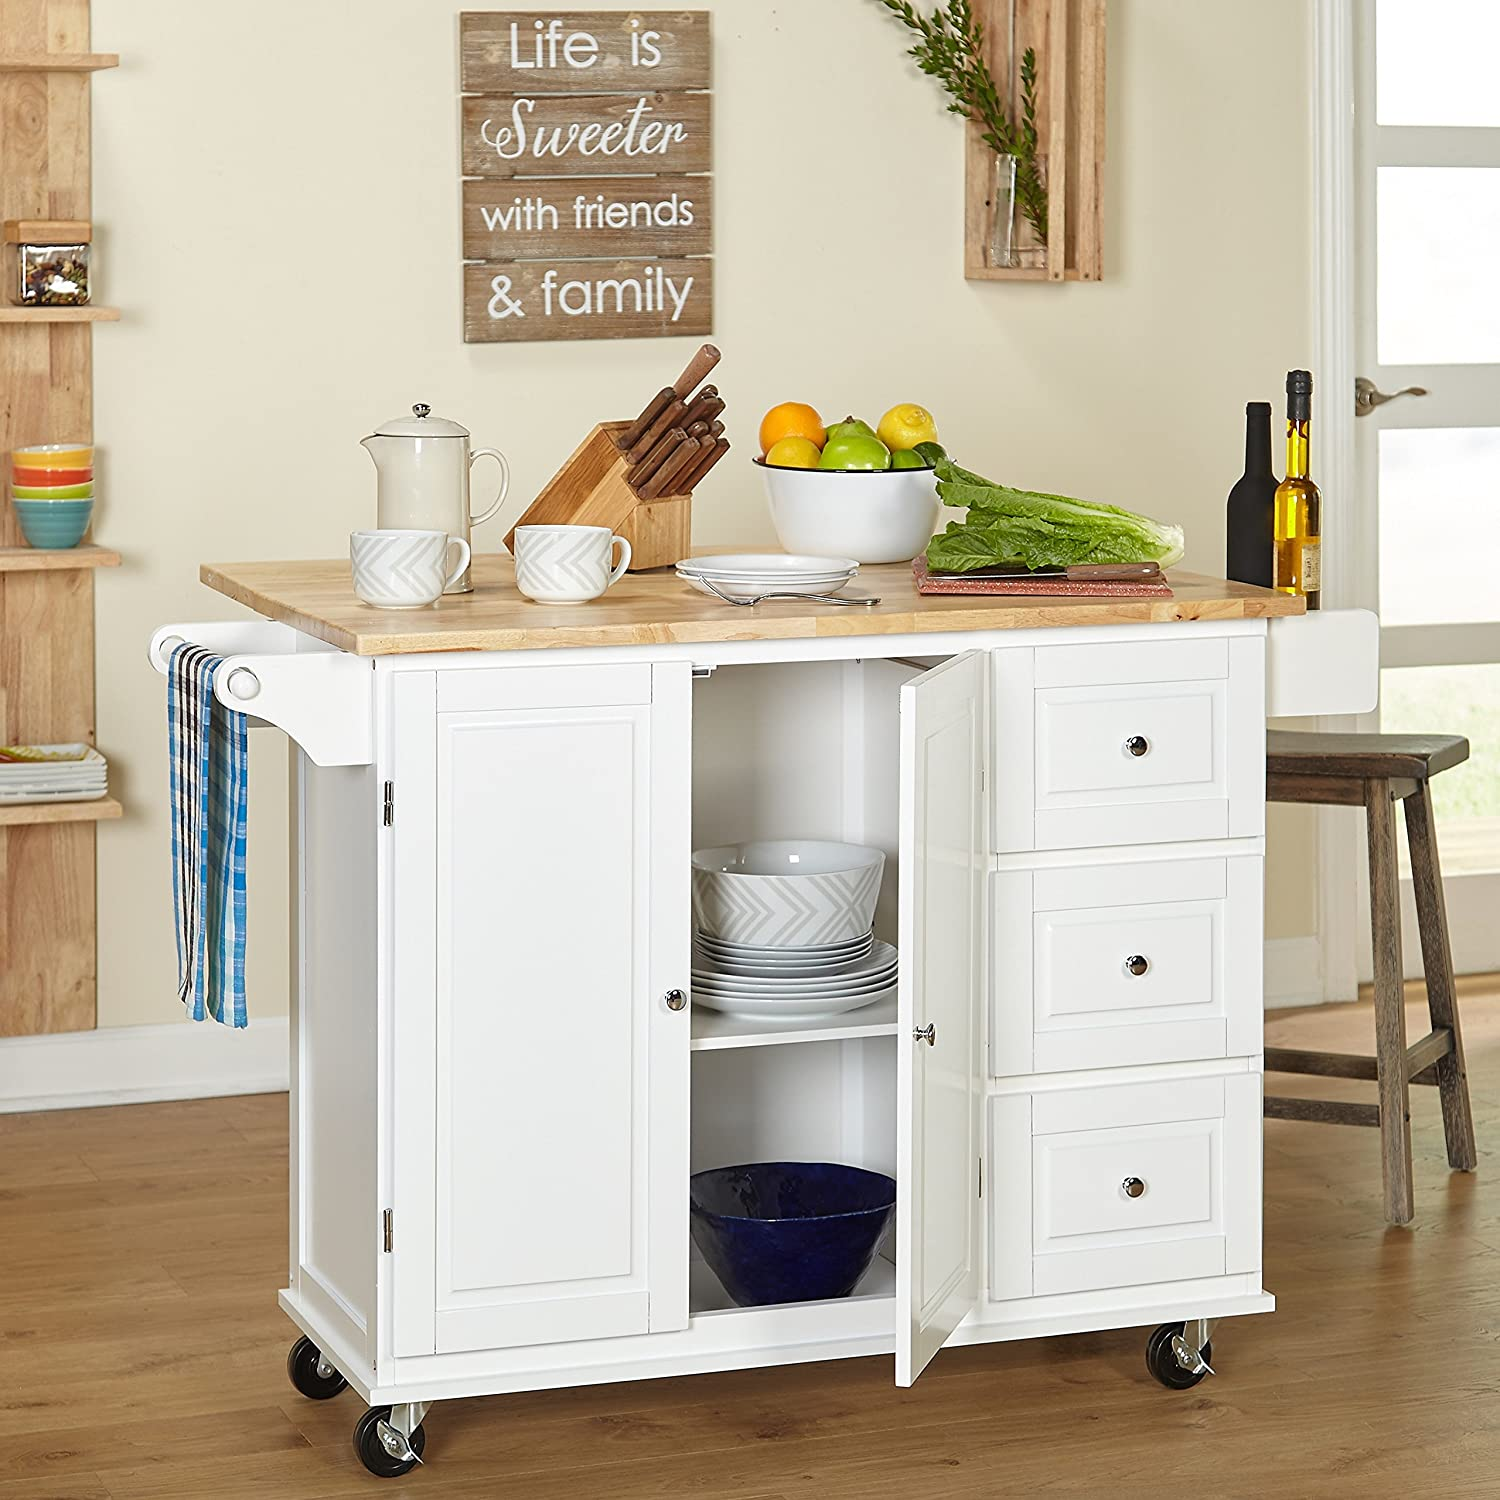 Amazon Com Kitchen Islands On Wheels Drop Leaf Utility Cart Mobile Breakfast Bar With Storage Drawers Towel And Spice Rack Bundle Includes Bonus Kitchen Conversion Chart Magnet From Designer Home Kitchen White Furniture